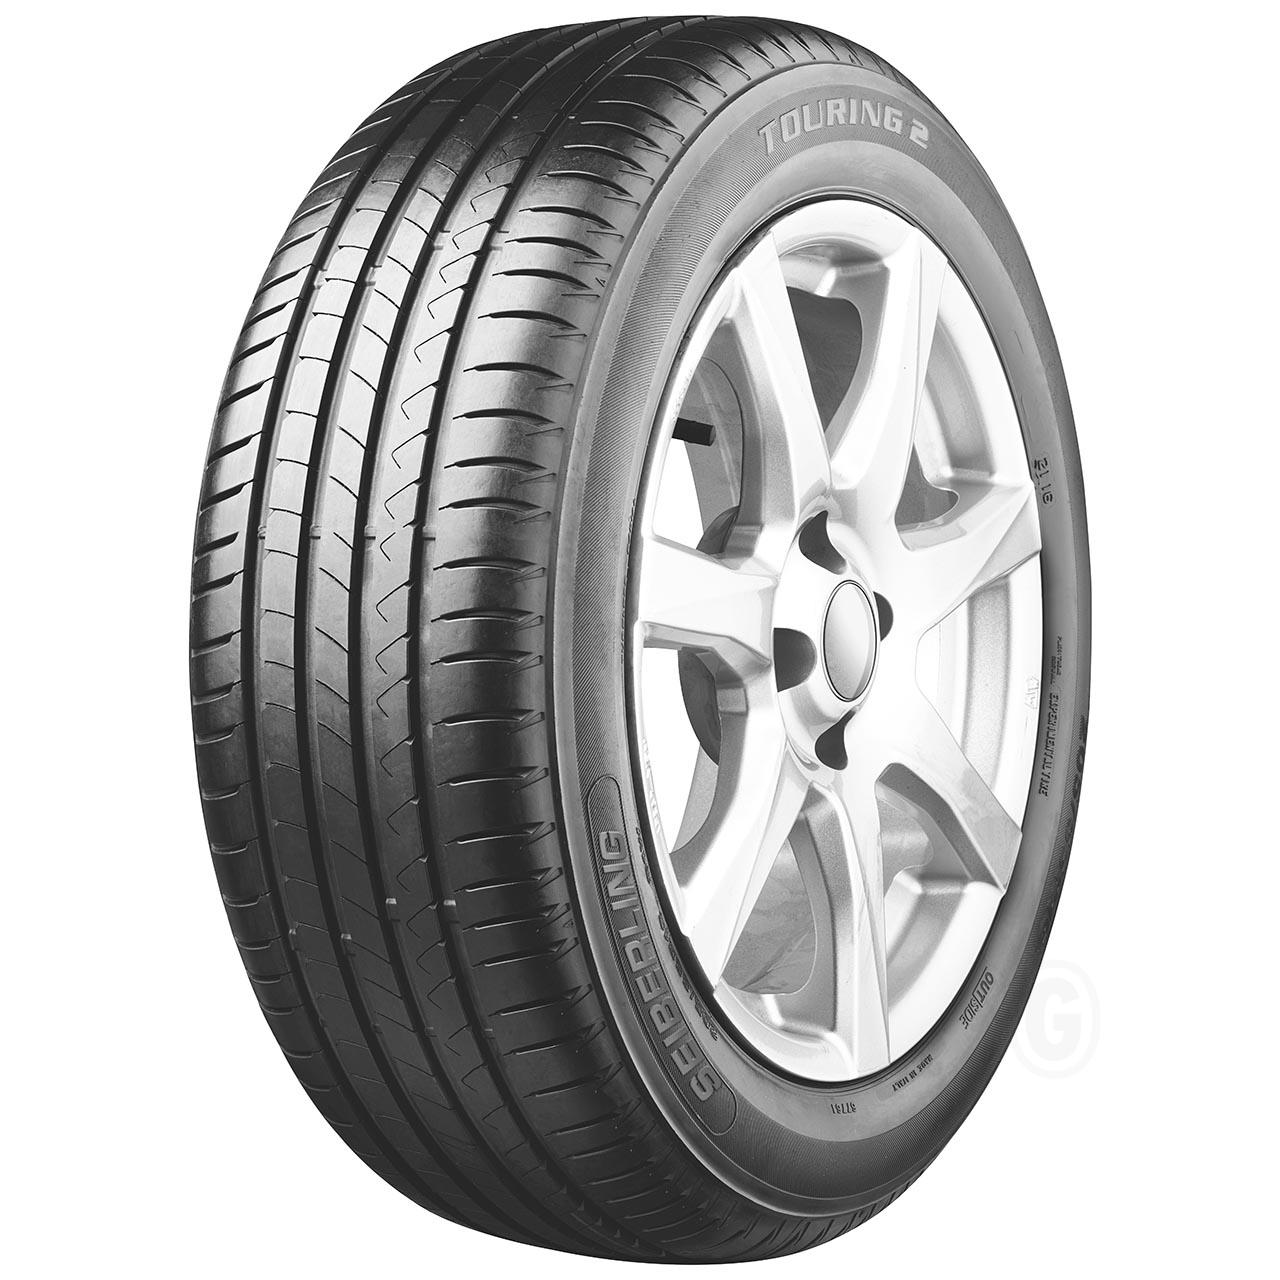 Seiberling Touring 2 225/40R18 92Y XL